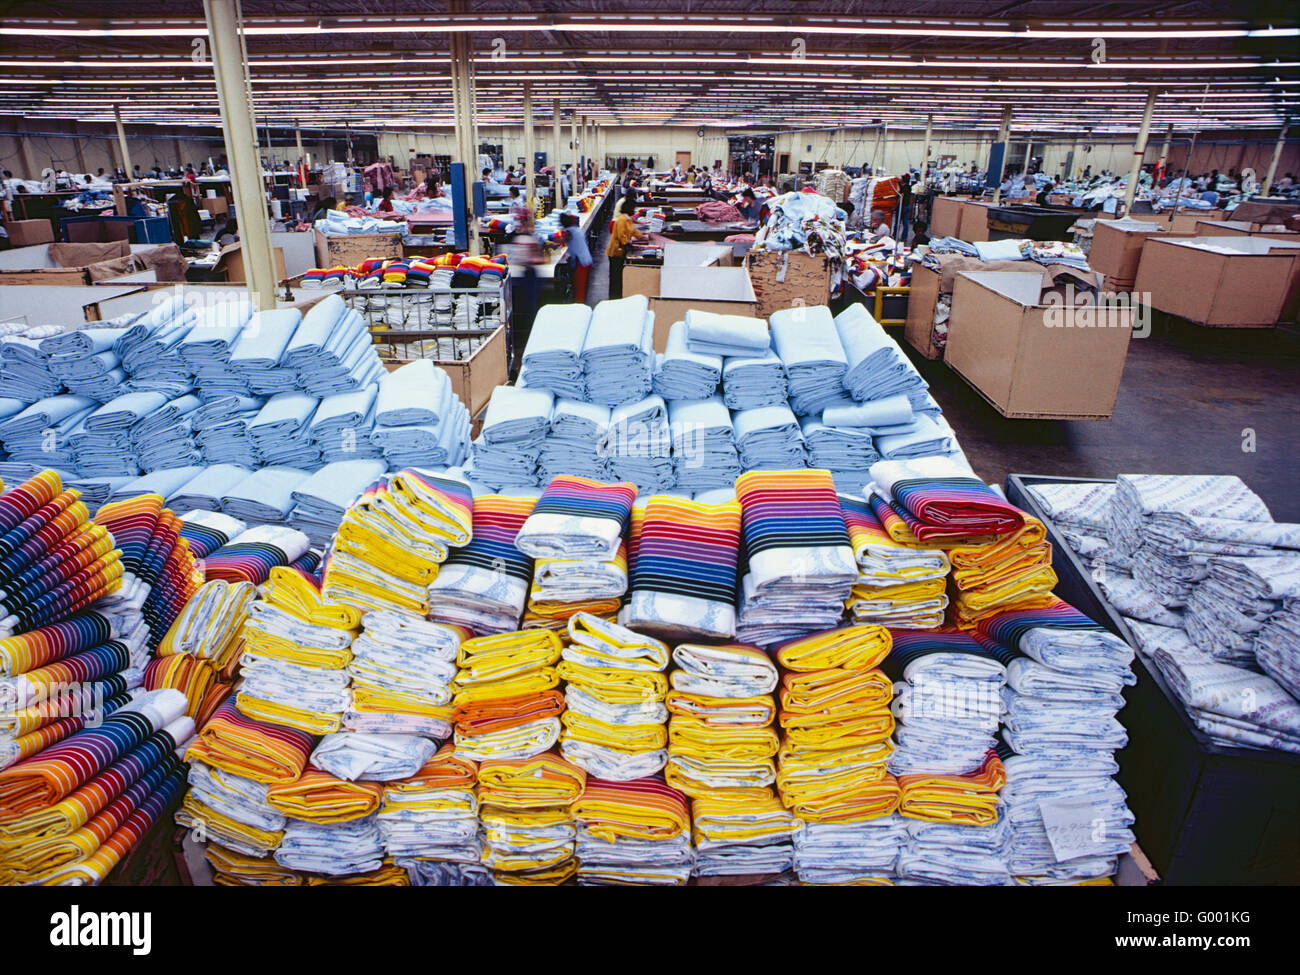 Stacks of colorful finished cotton sheets in a garment manufacturing facility Stock Photo